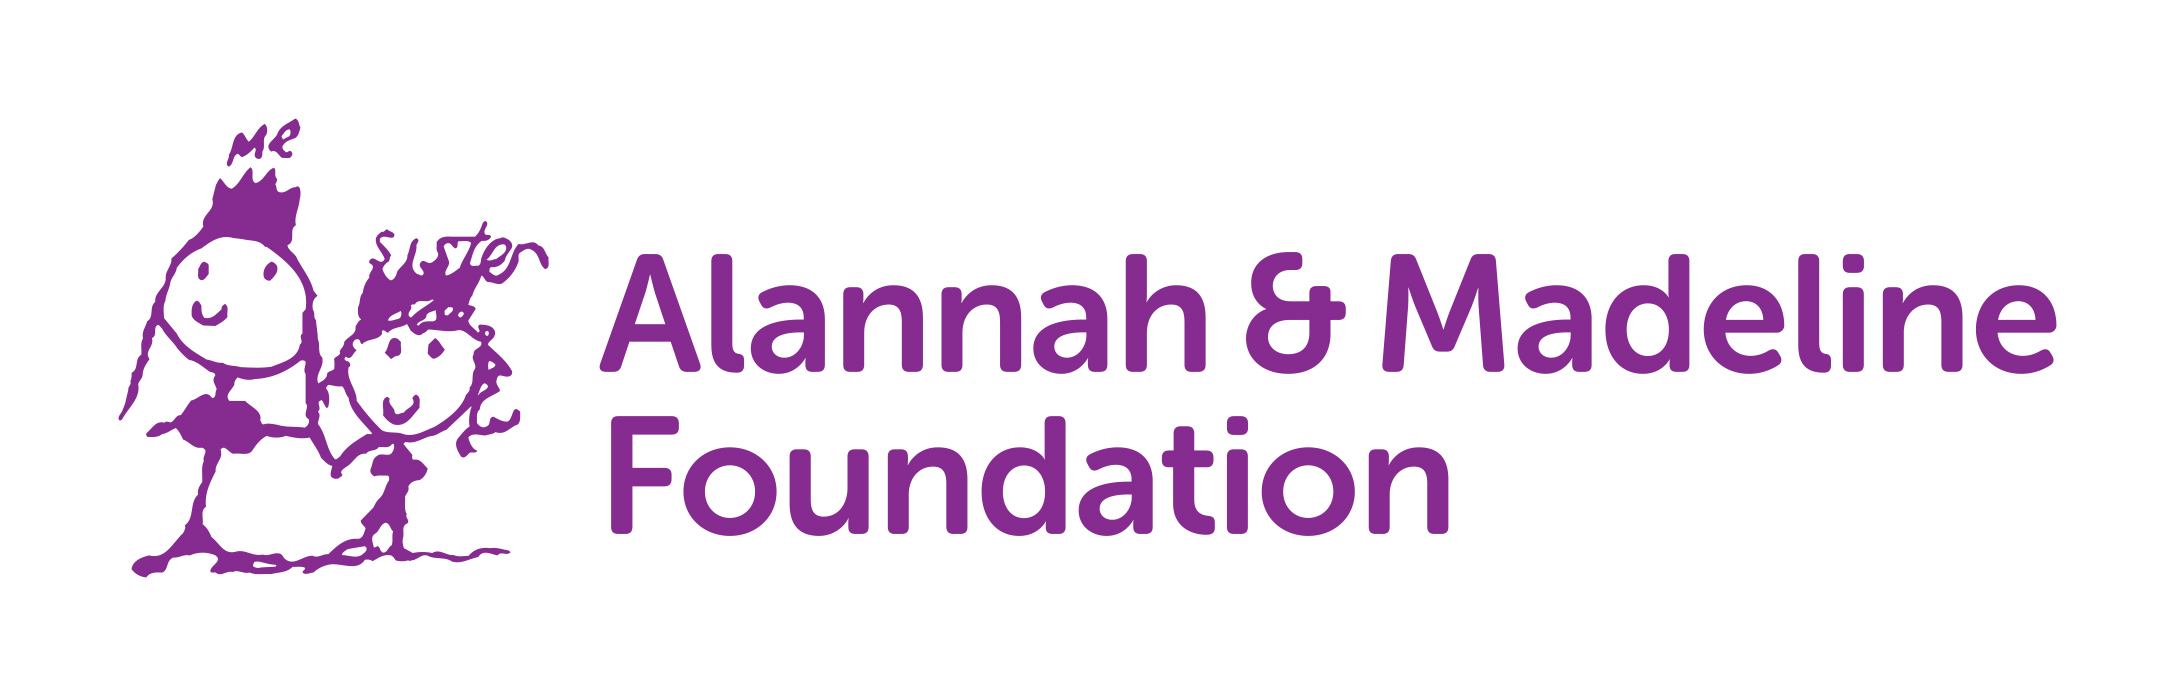 Alannah & Madeline Foundation